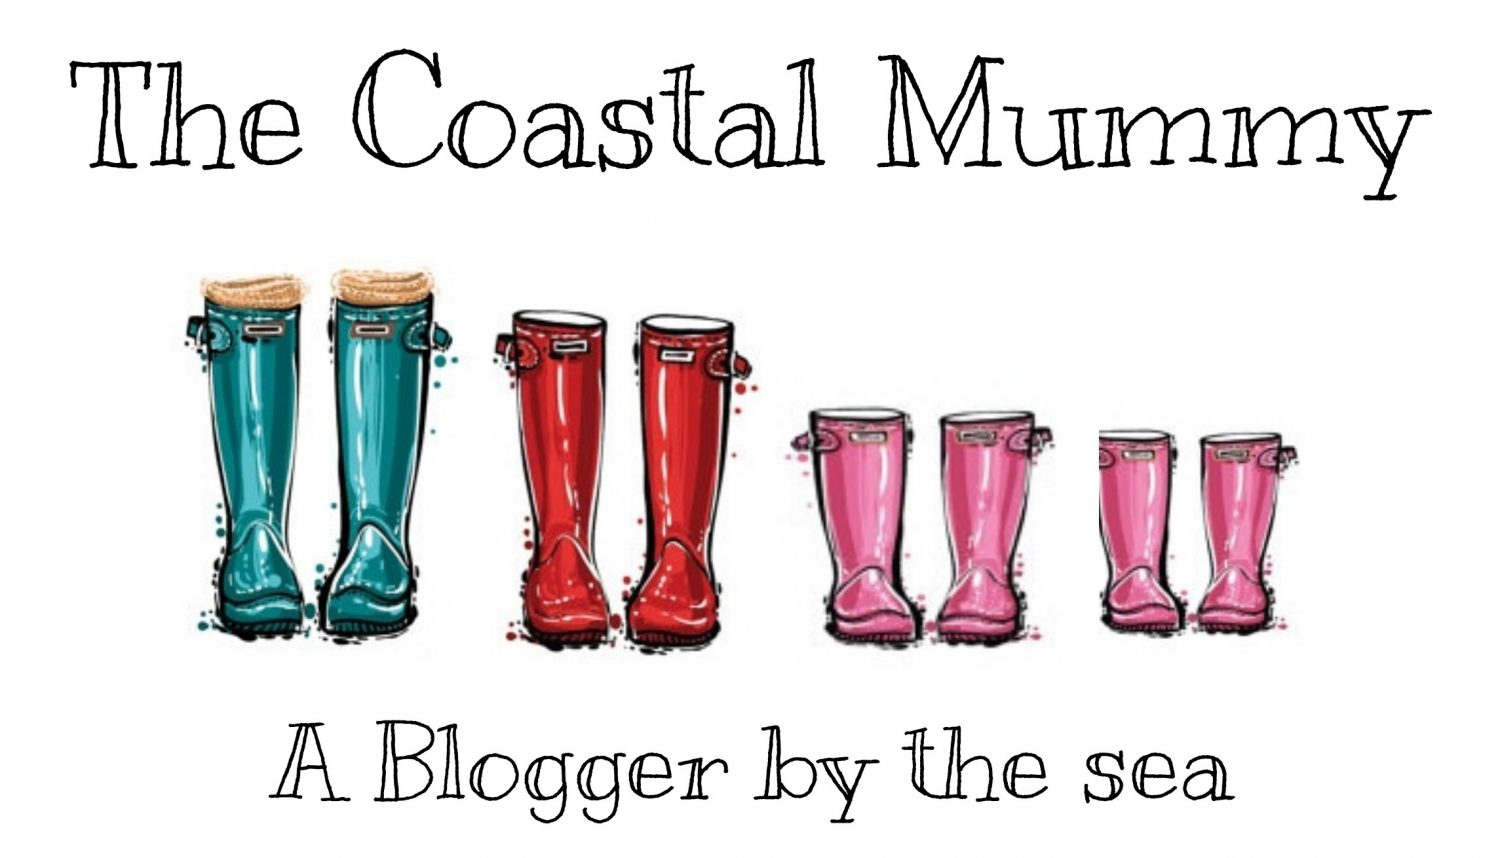 The Coastal Mummy